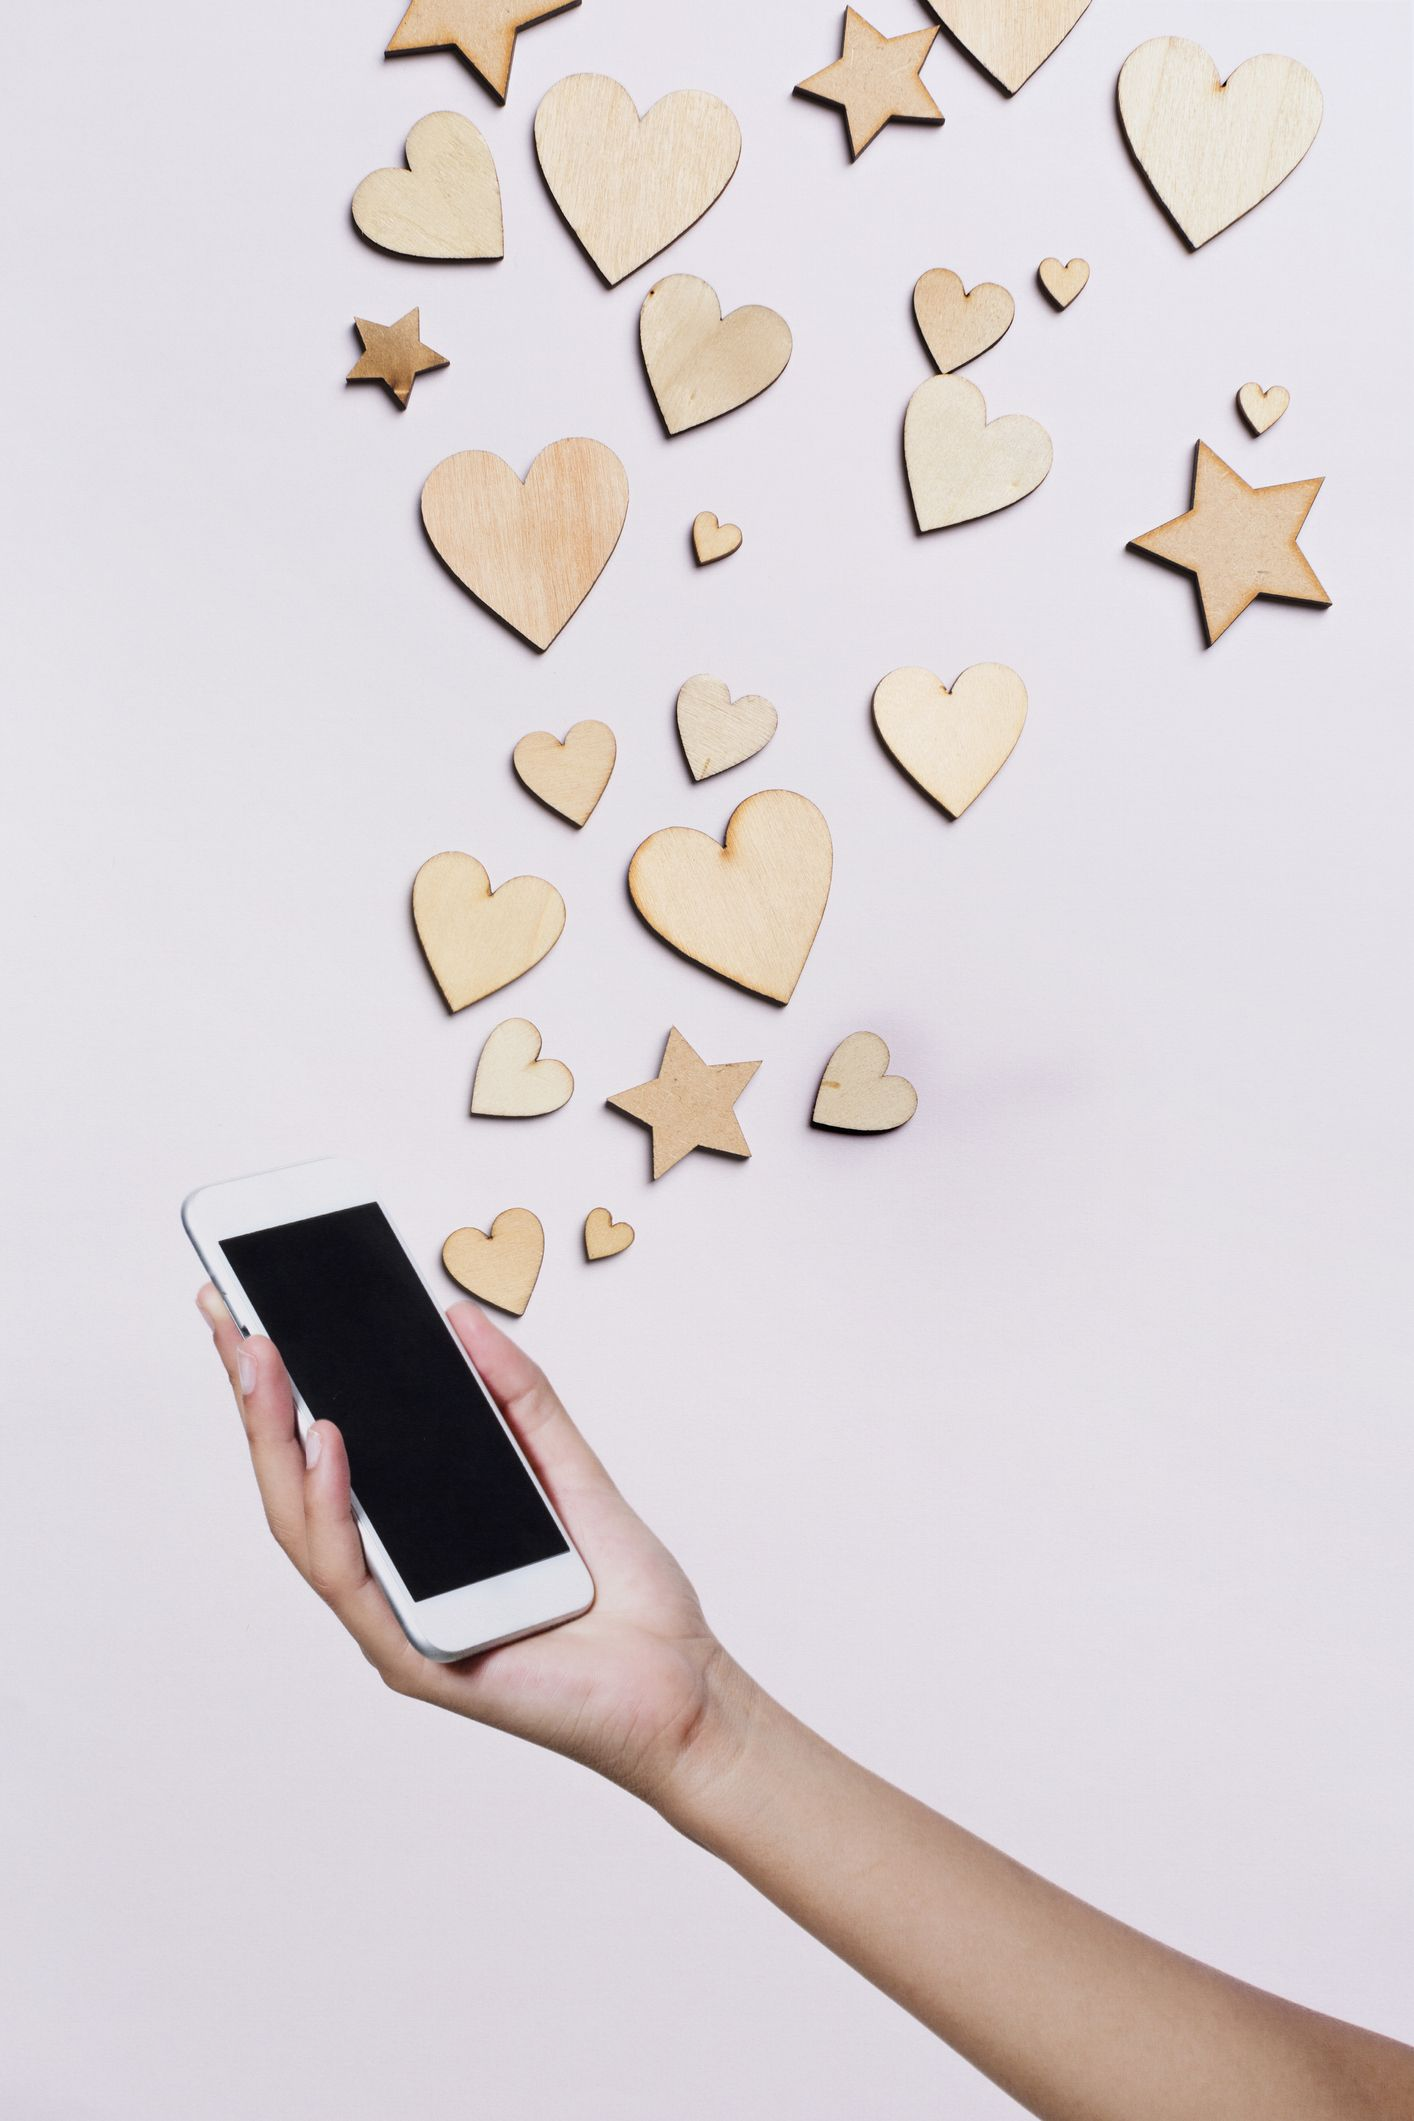 19 Best Instagram Therapists To Follow For **Expert** Relationship Advice